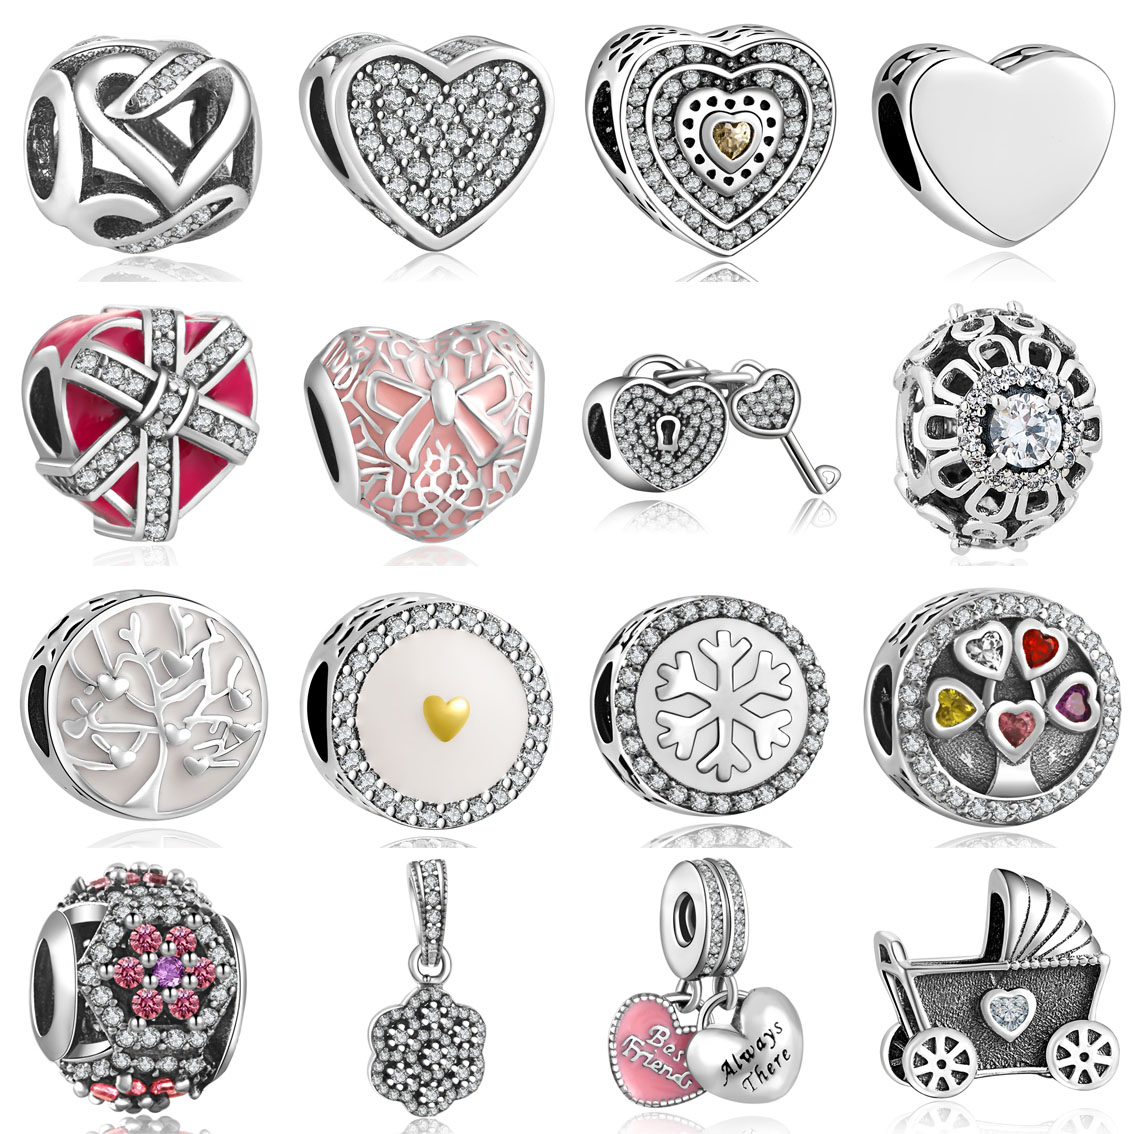 New TOP Quality 925 Silver Charm Beads with Full Crystal Fit Original Pandora Bracelet Pendants For Women Jewelry ...